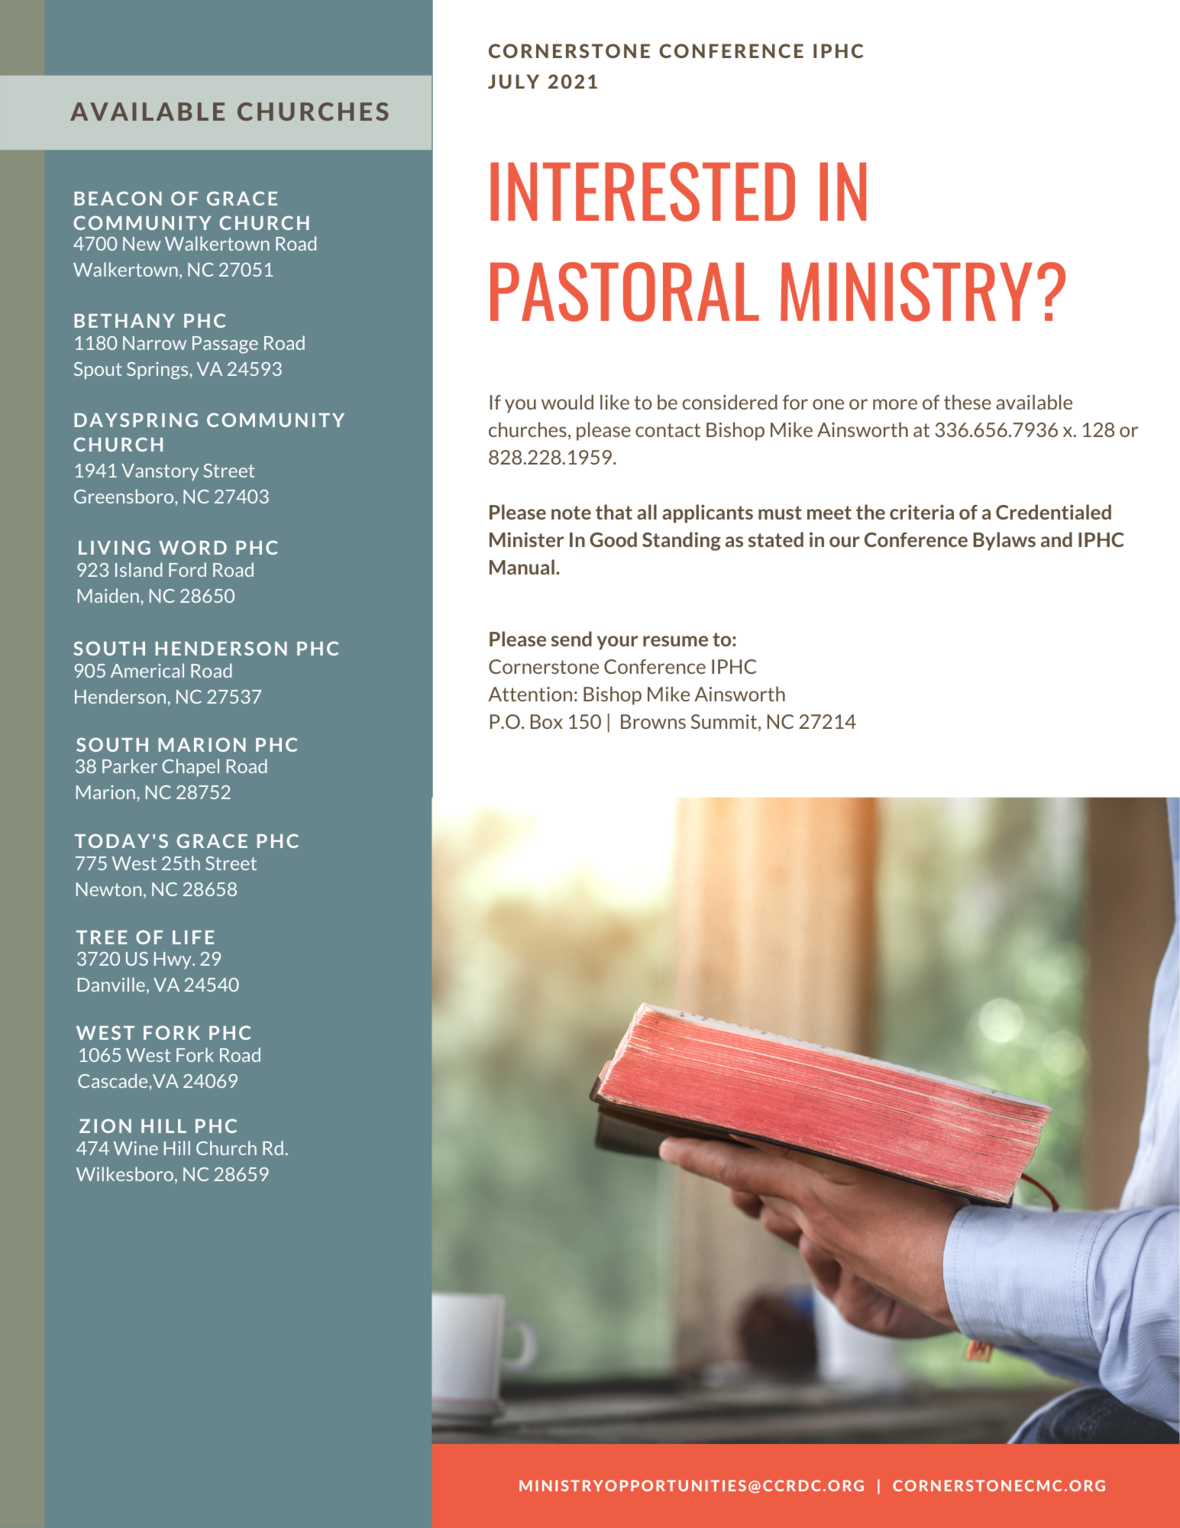 2021 CCRDC Ministry Opportunities-2